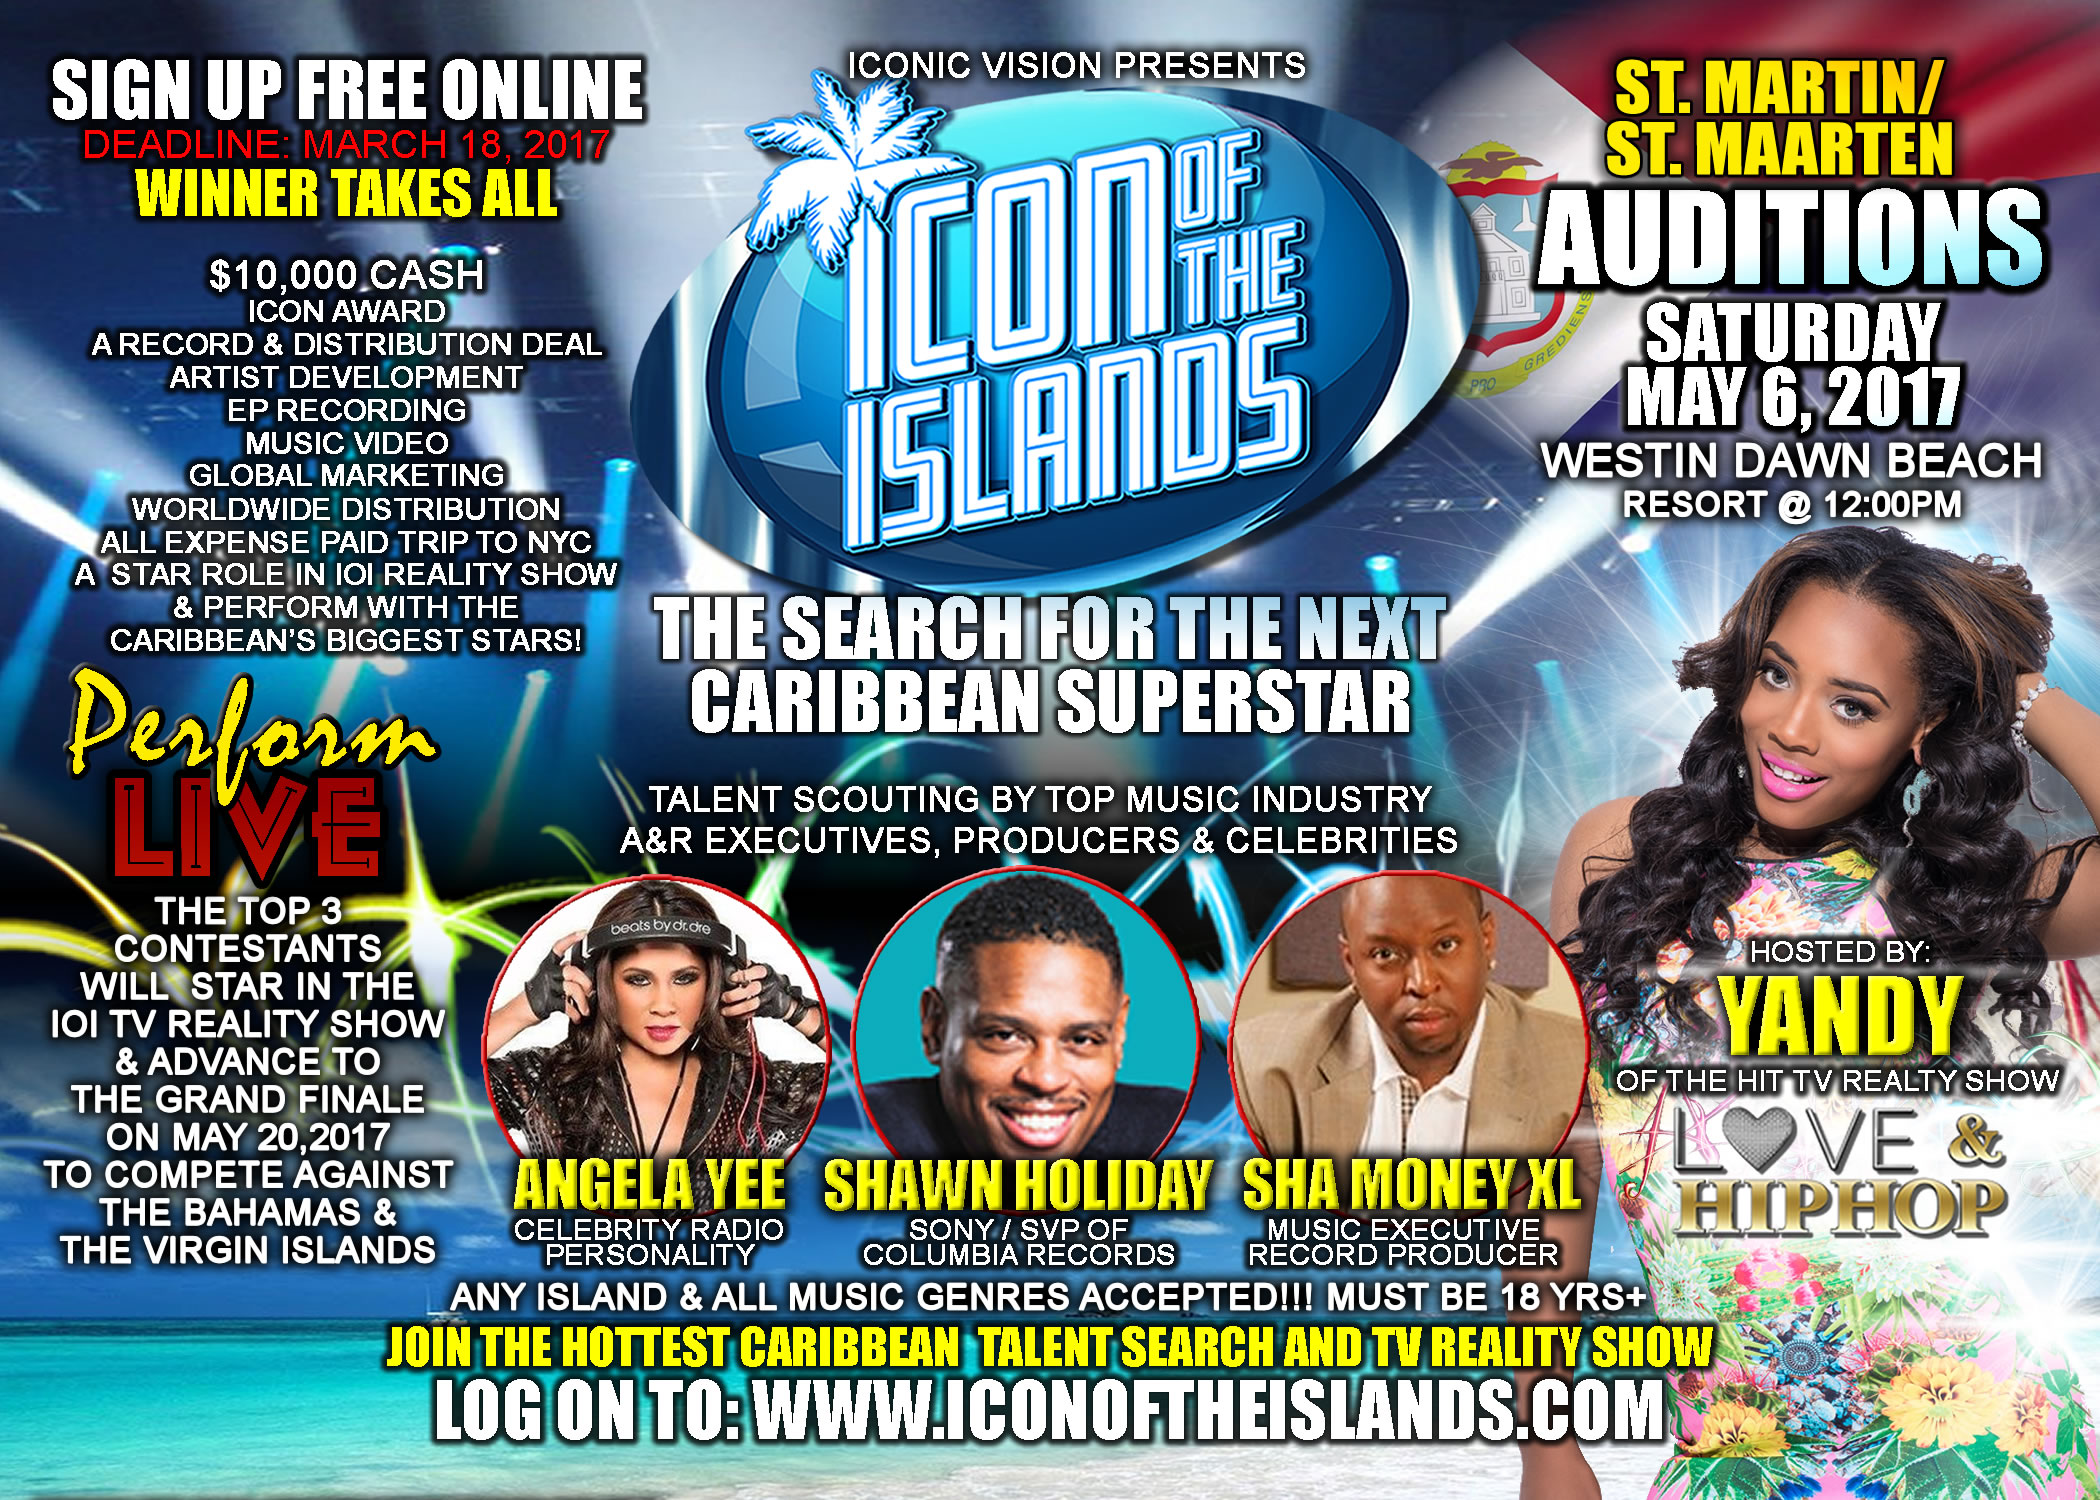 St Maarten and St Martin Icon of the Islands Auditions - Season 2